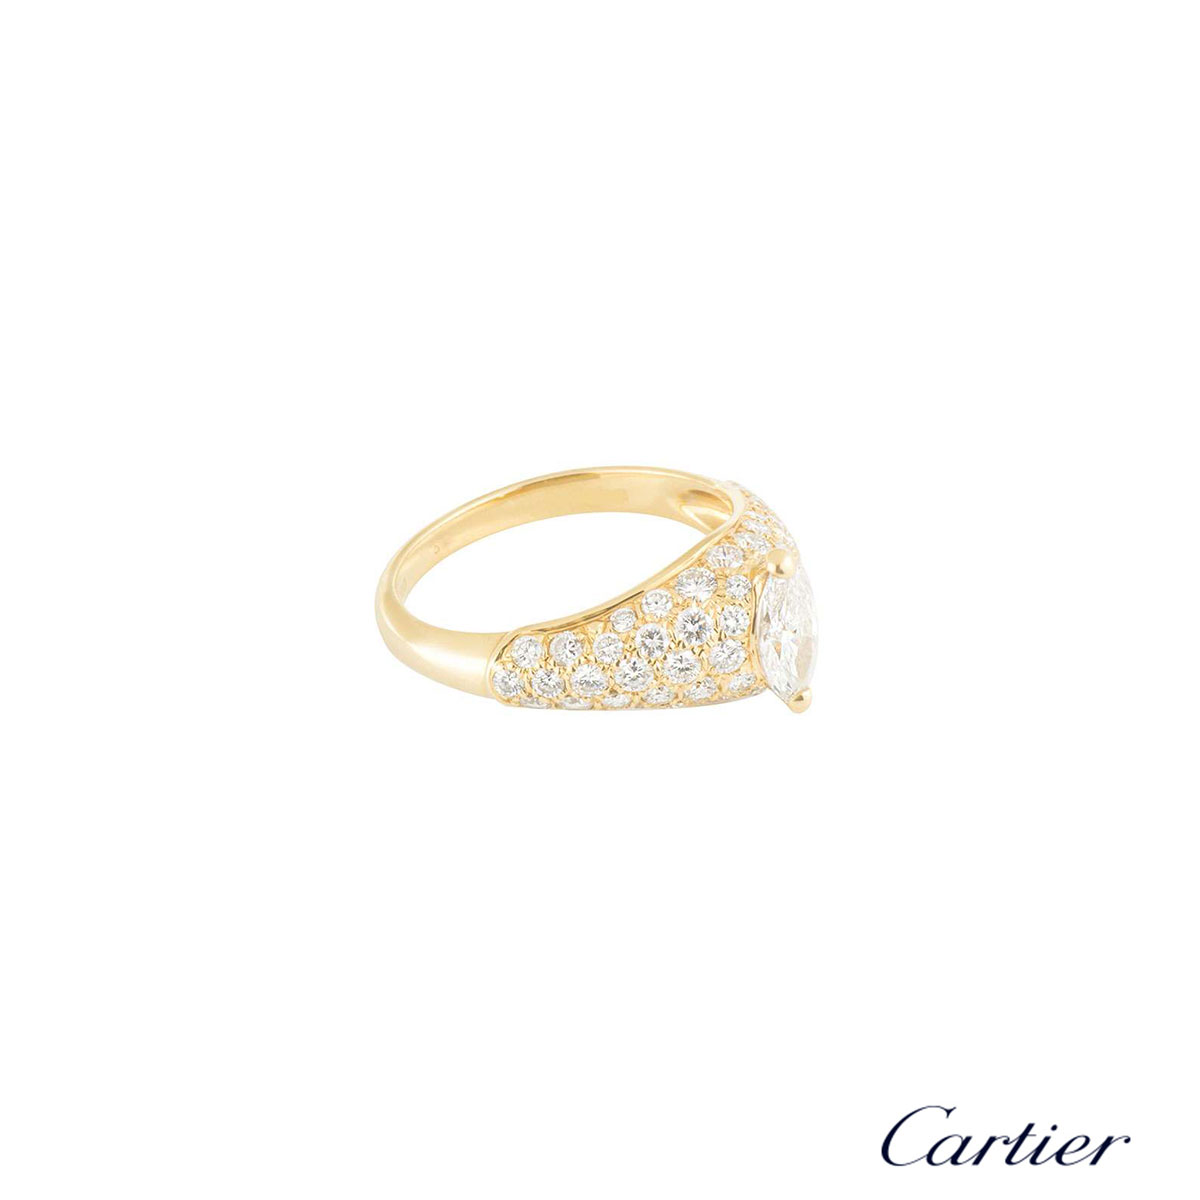 Cartier Yellow Gold Marquise Diamond Ring 0.55ct G+/VS+